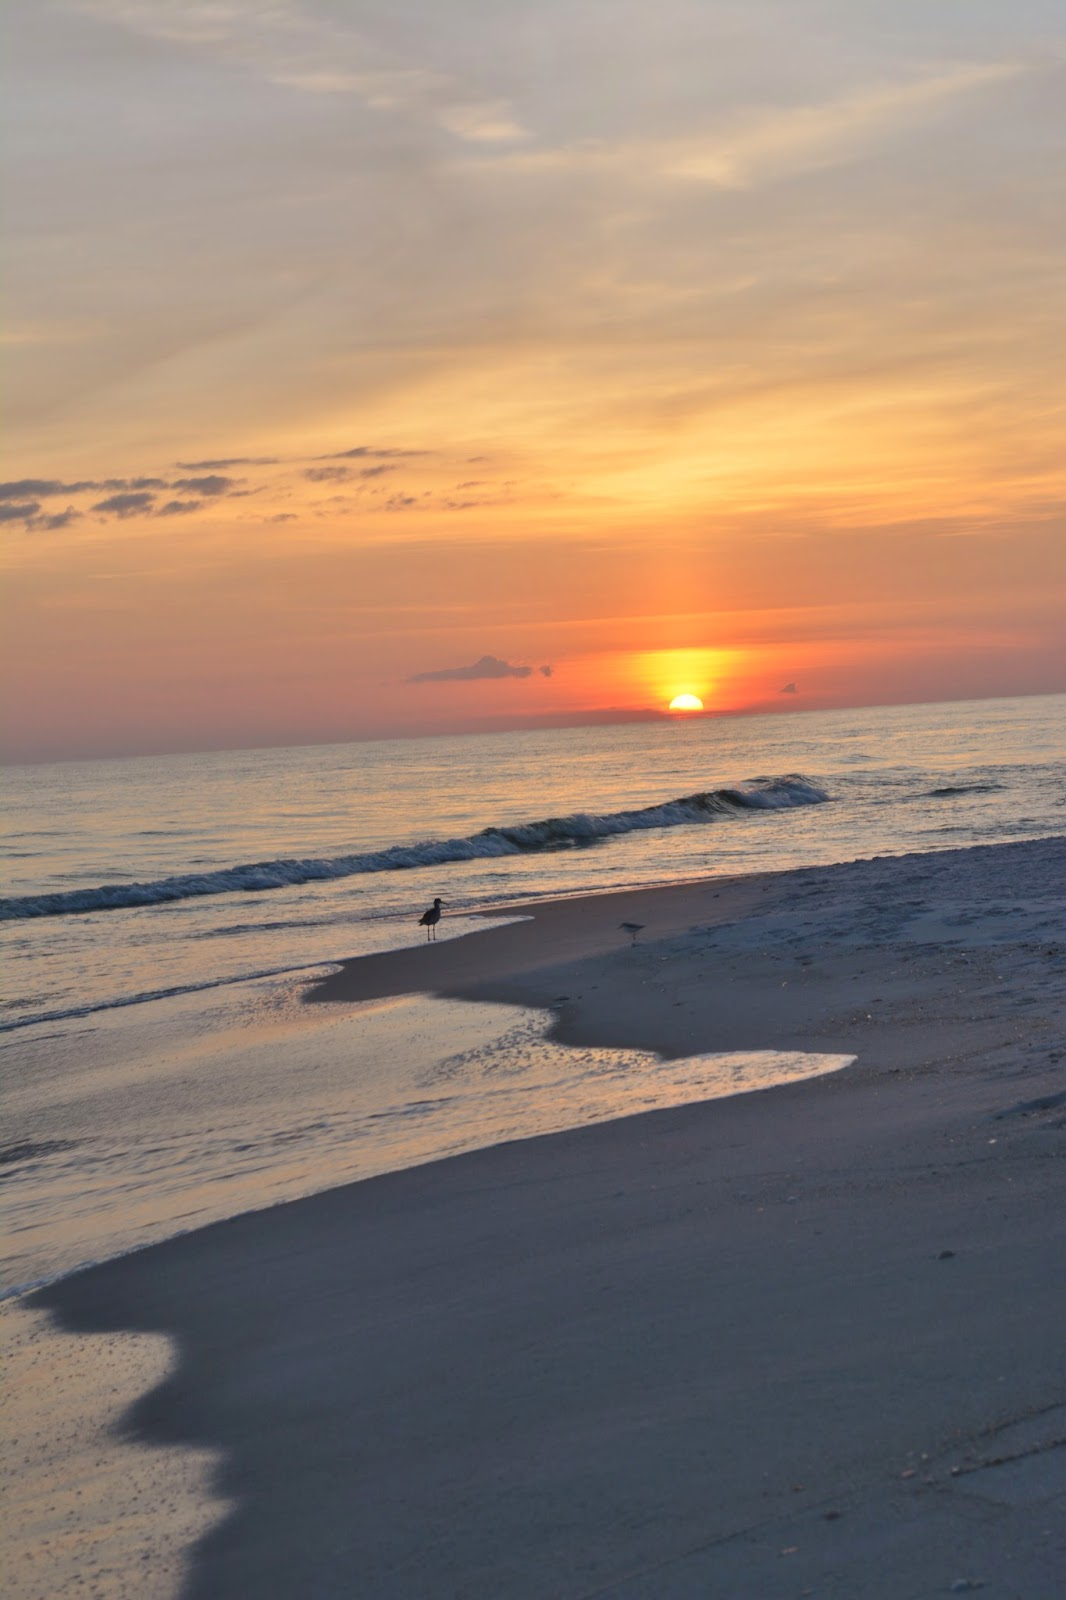 TeamRopesCourse: Florida Part 1: The Beach At Sunset